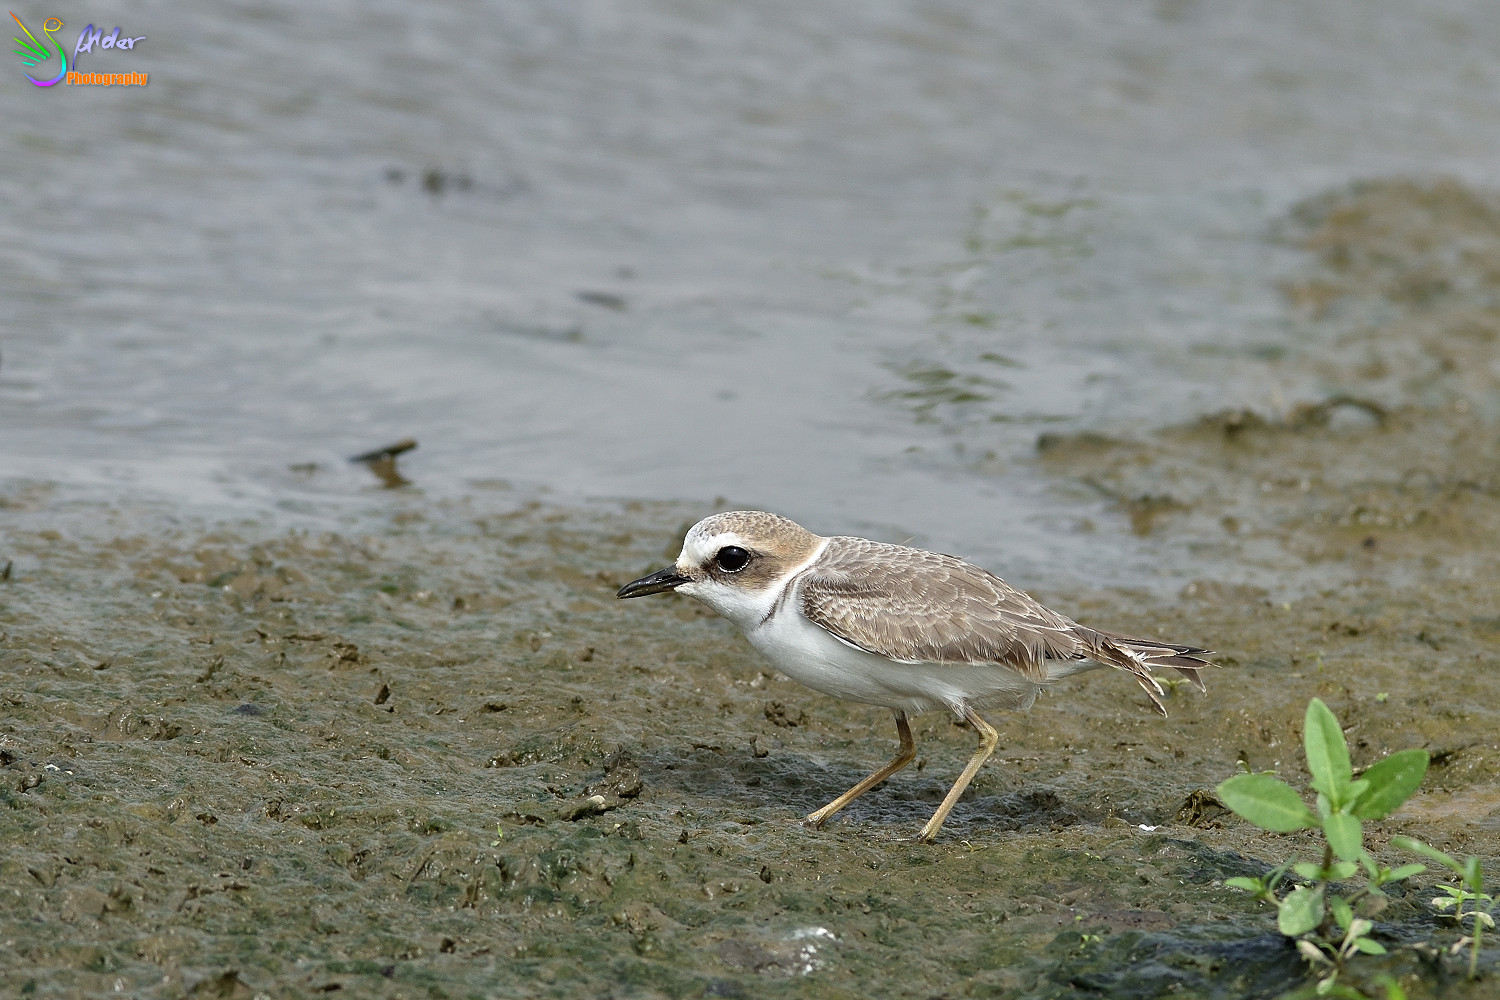 Kentish_Plover_3179